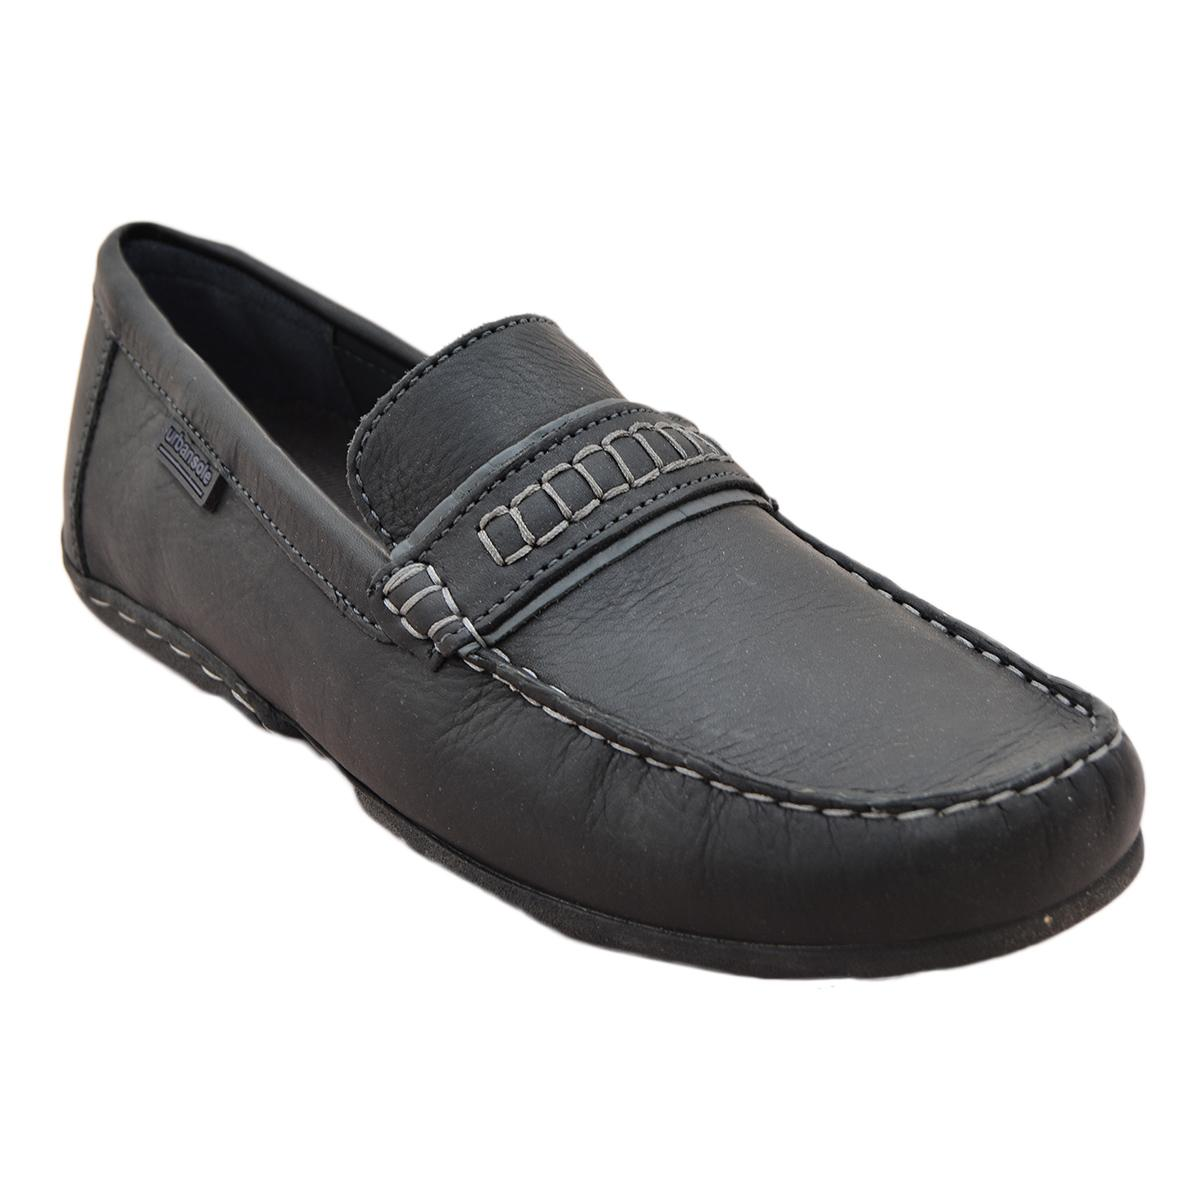 Urban Sole - Black Casual Moccasin For Men - 606004